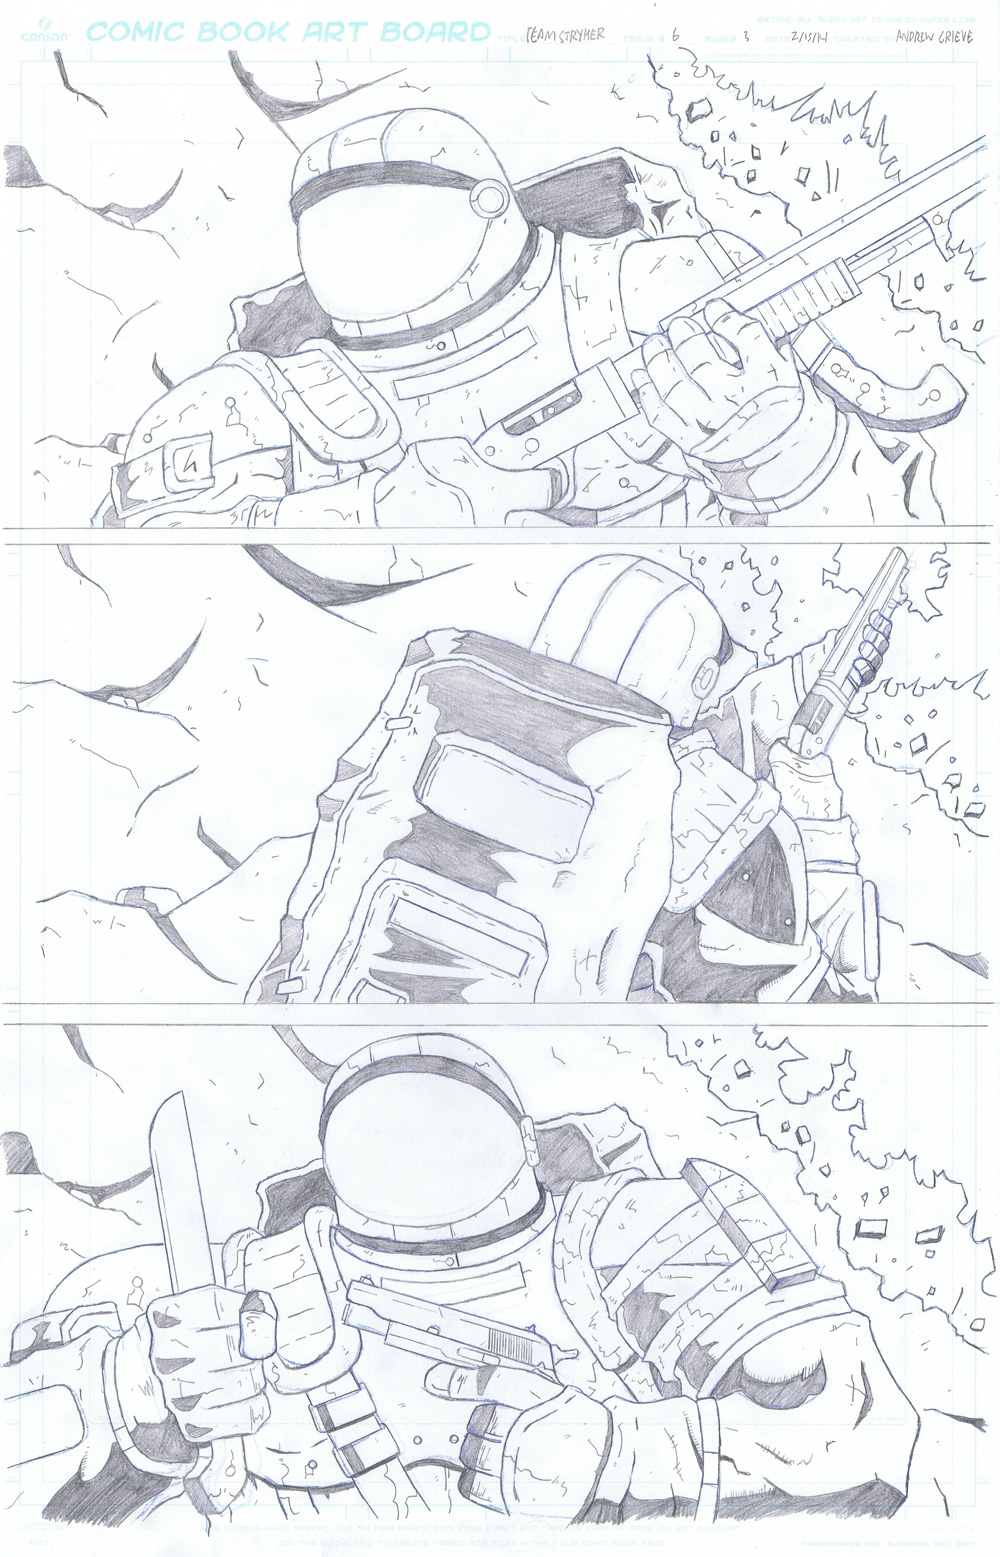 MISSION 006: PAGE 03 PENCIL